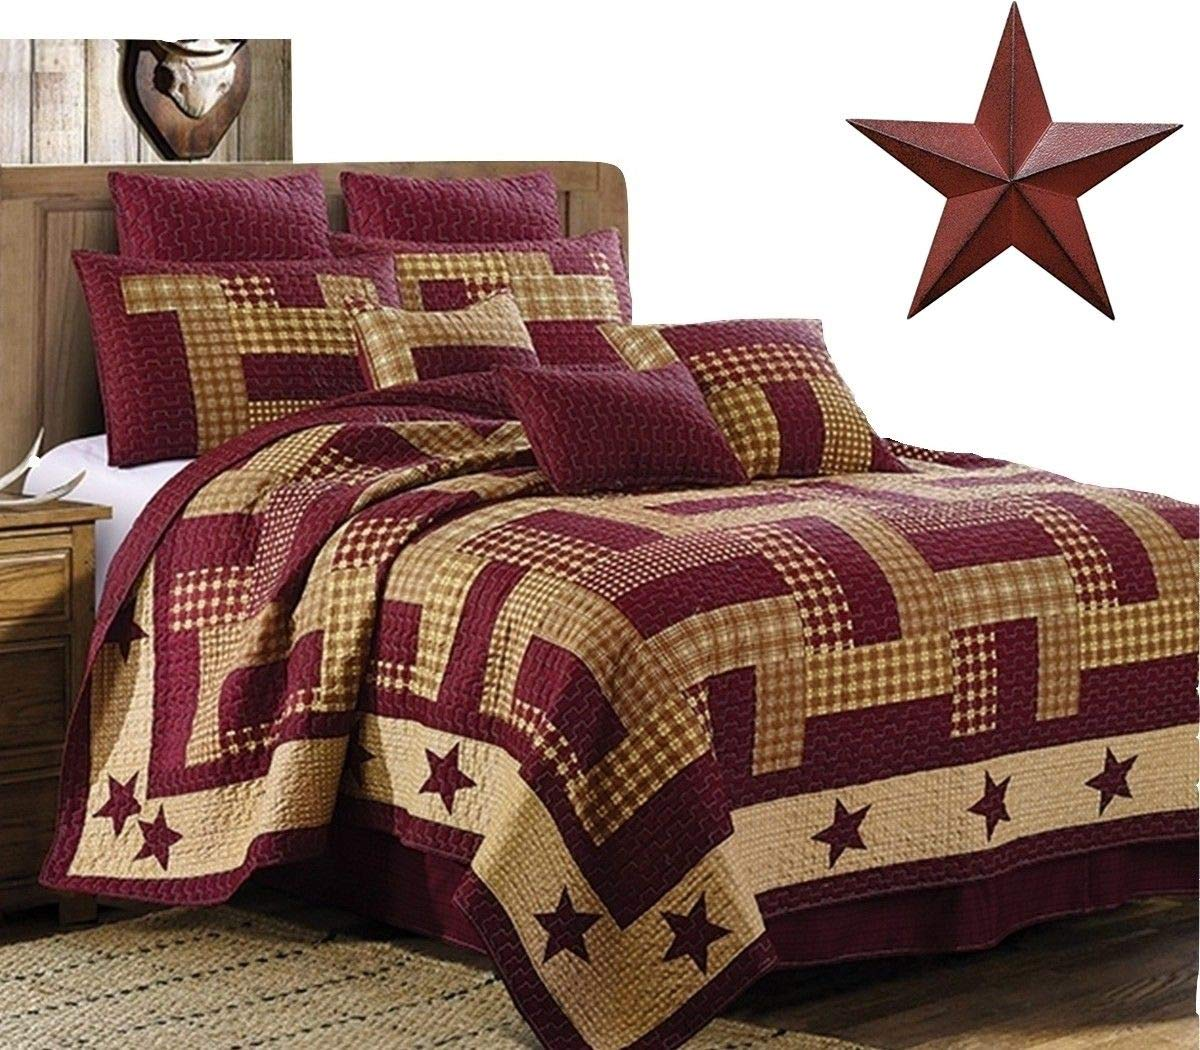 Virah Bella Homestead Red Patchwork Printed 3pc Full/Queen Quilt Set + Metal BARN Star